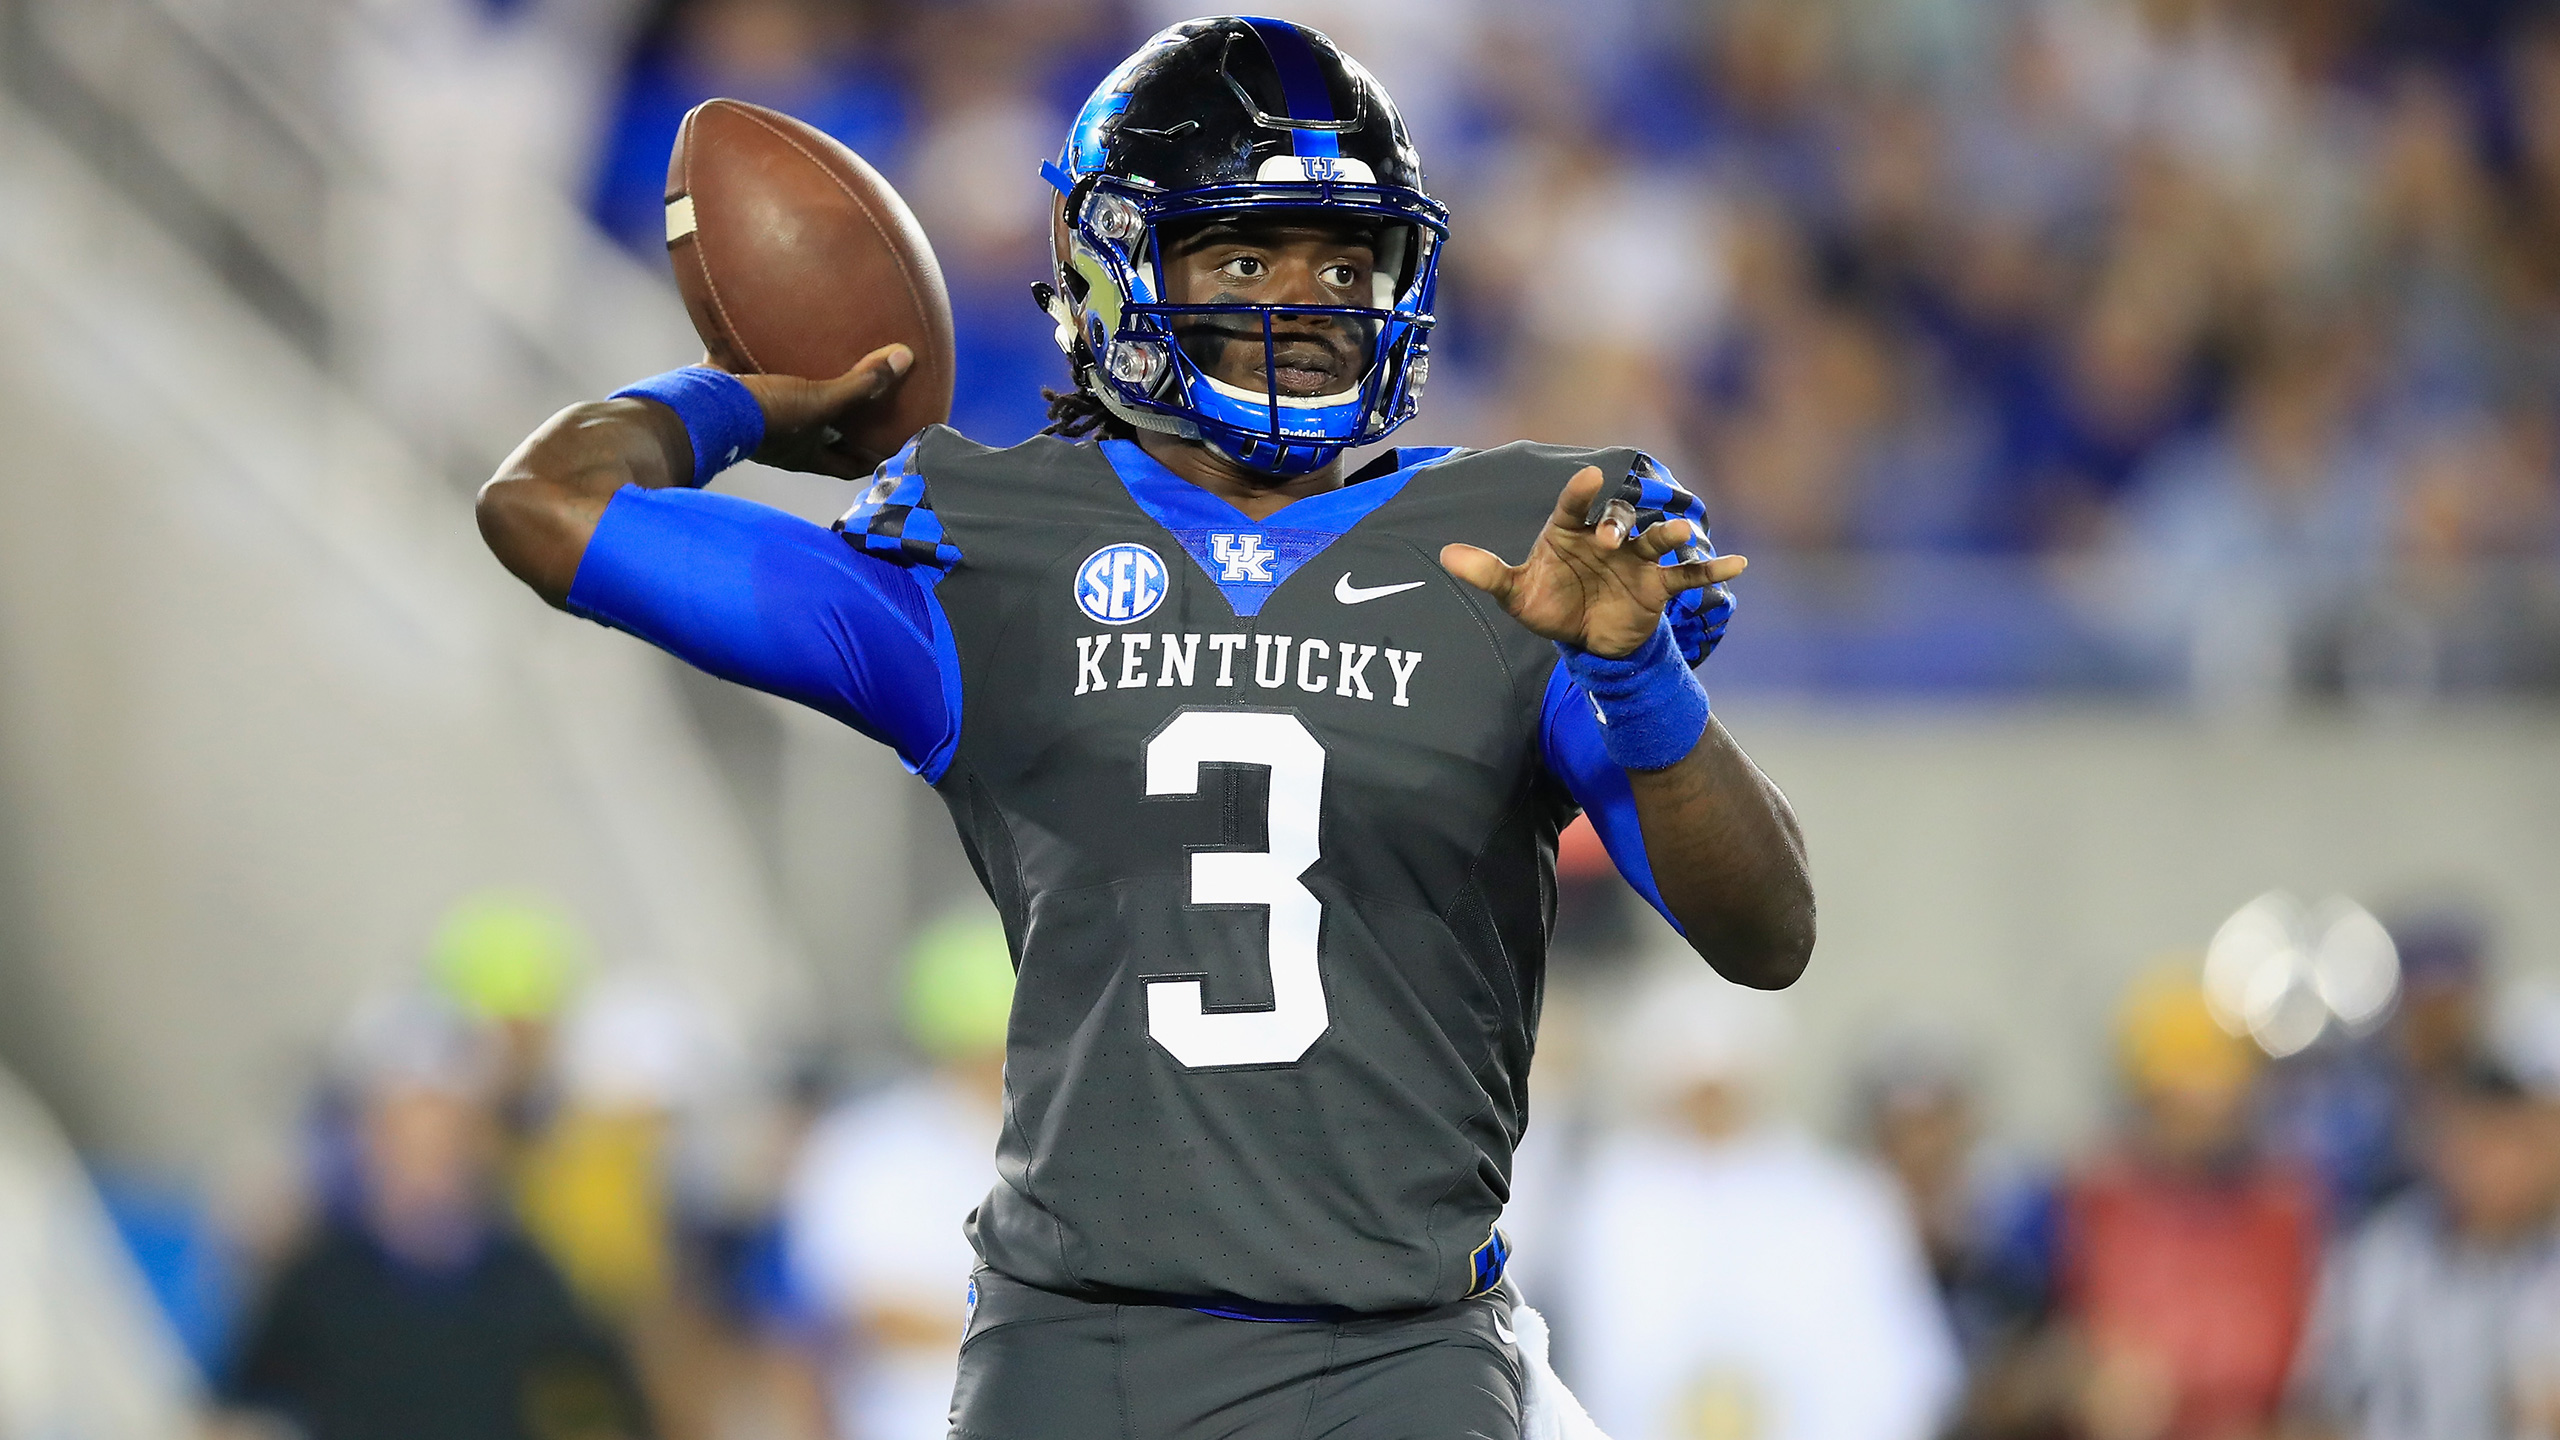 Vanderbilt vs. #14 Kentucky (Football)